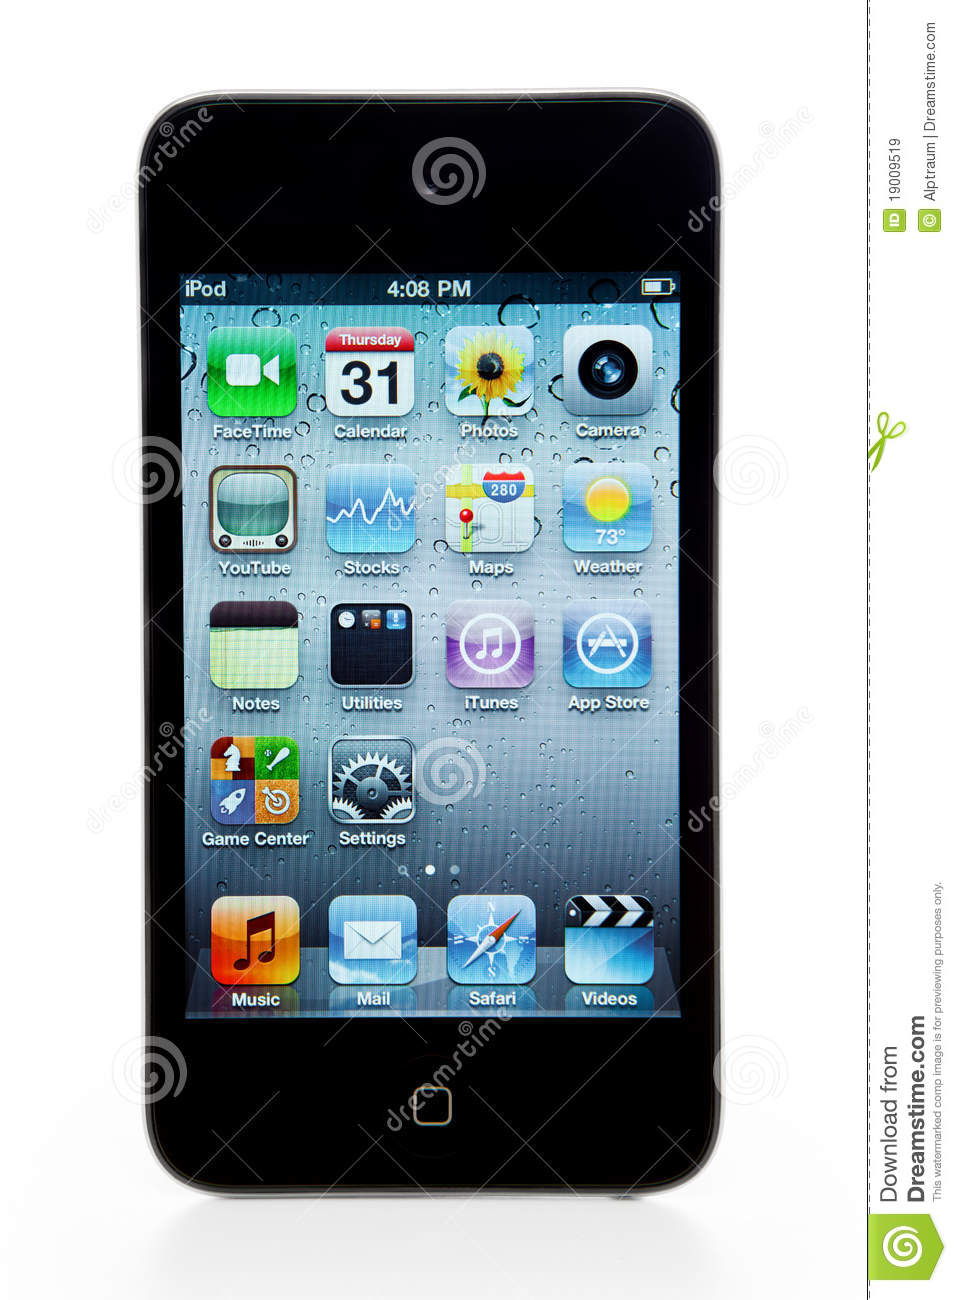 apple ipod touch 4th generation editorial stock image. Black Bedroom Furniture Sets. Home Design Ideas